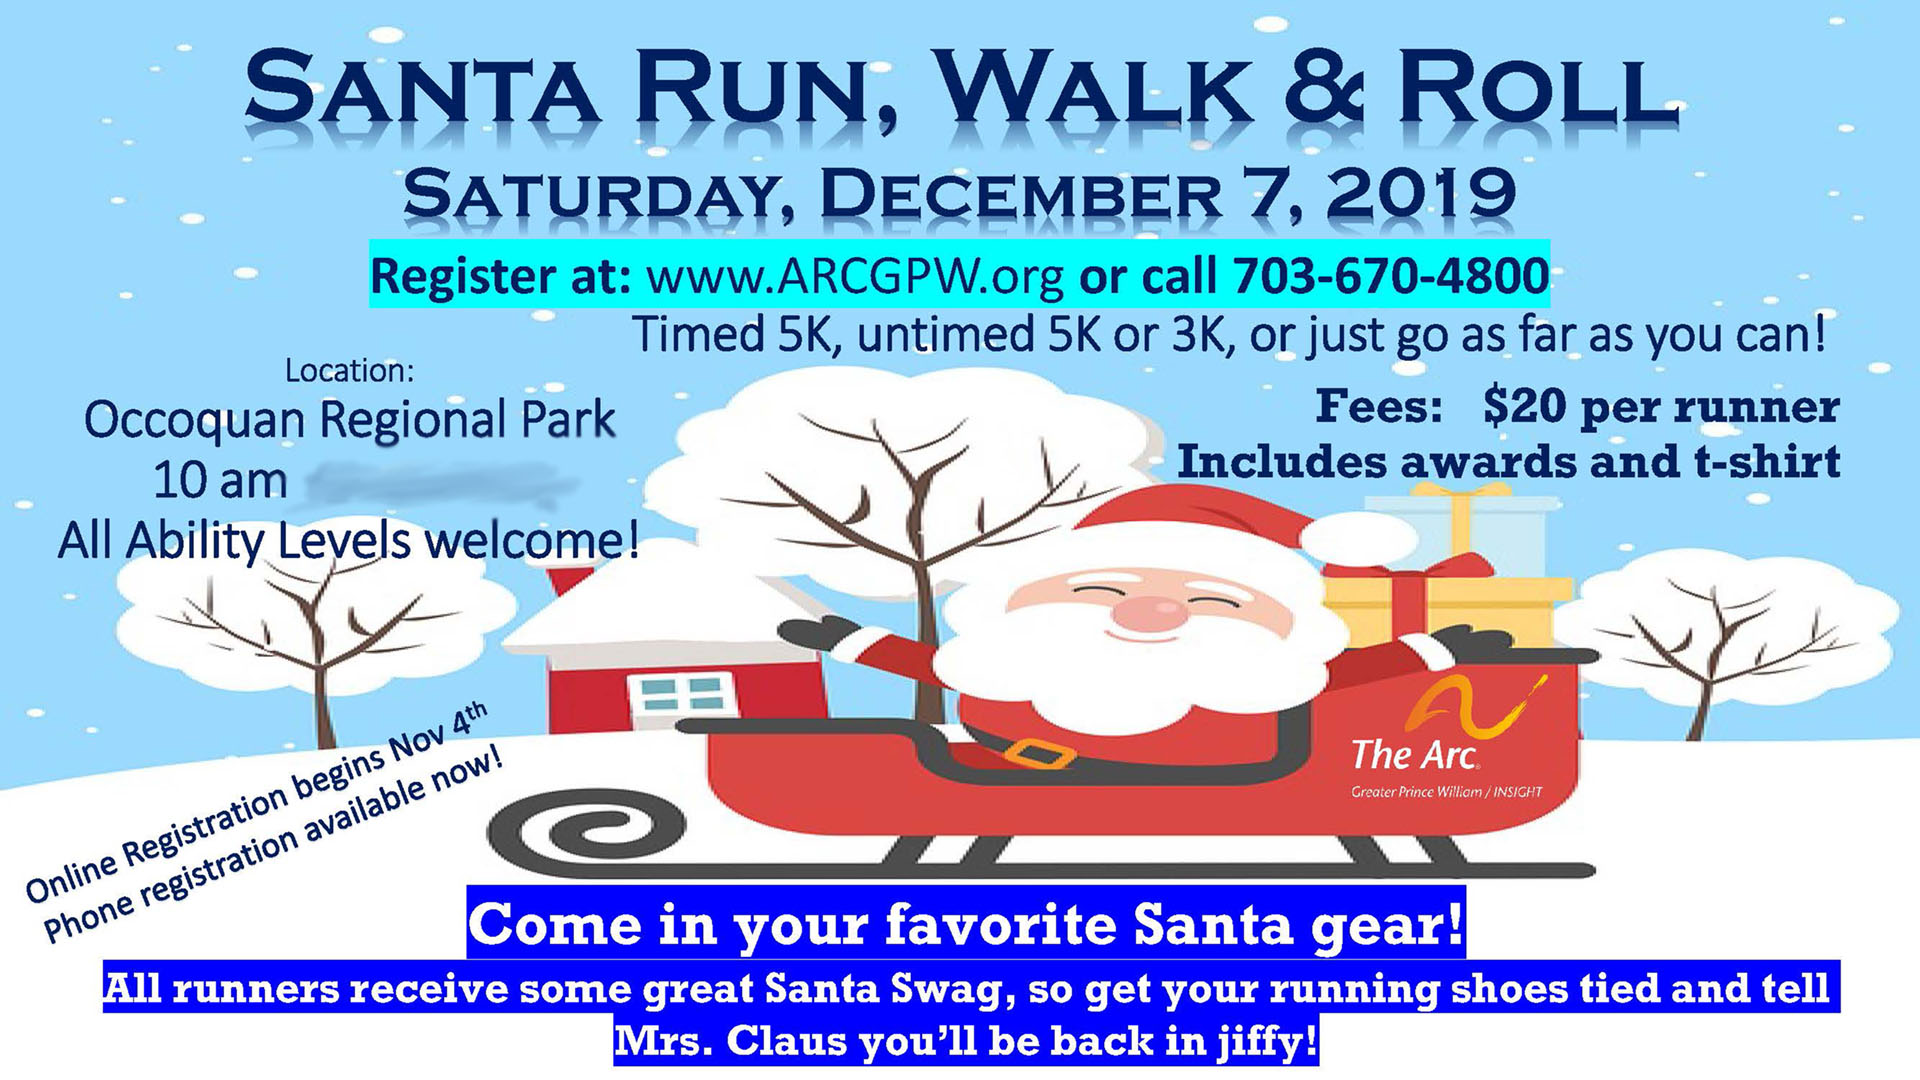 Santa Run, Walk and Roll occurring on Dec. 7